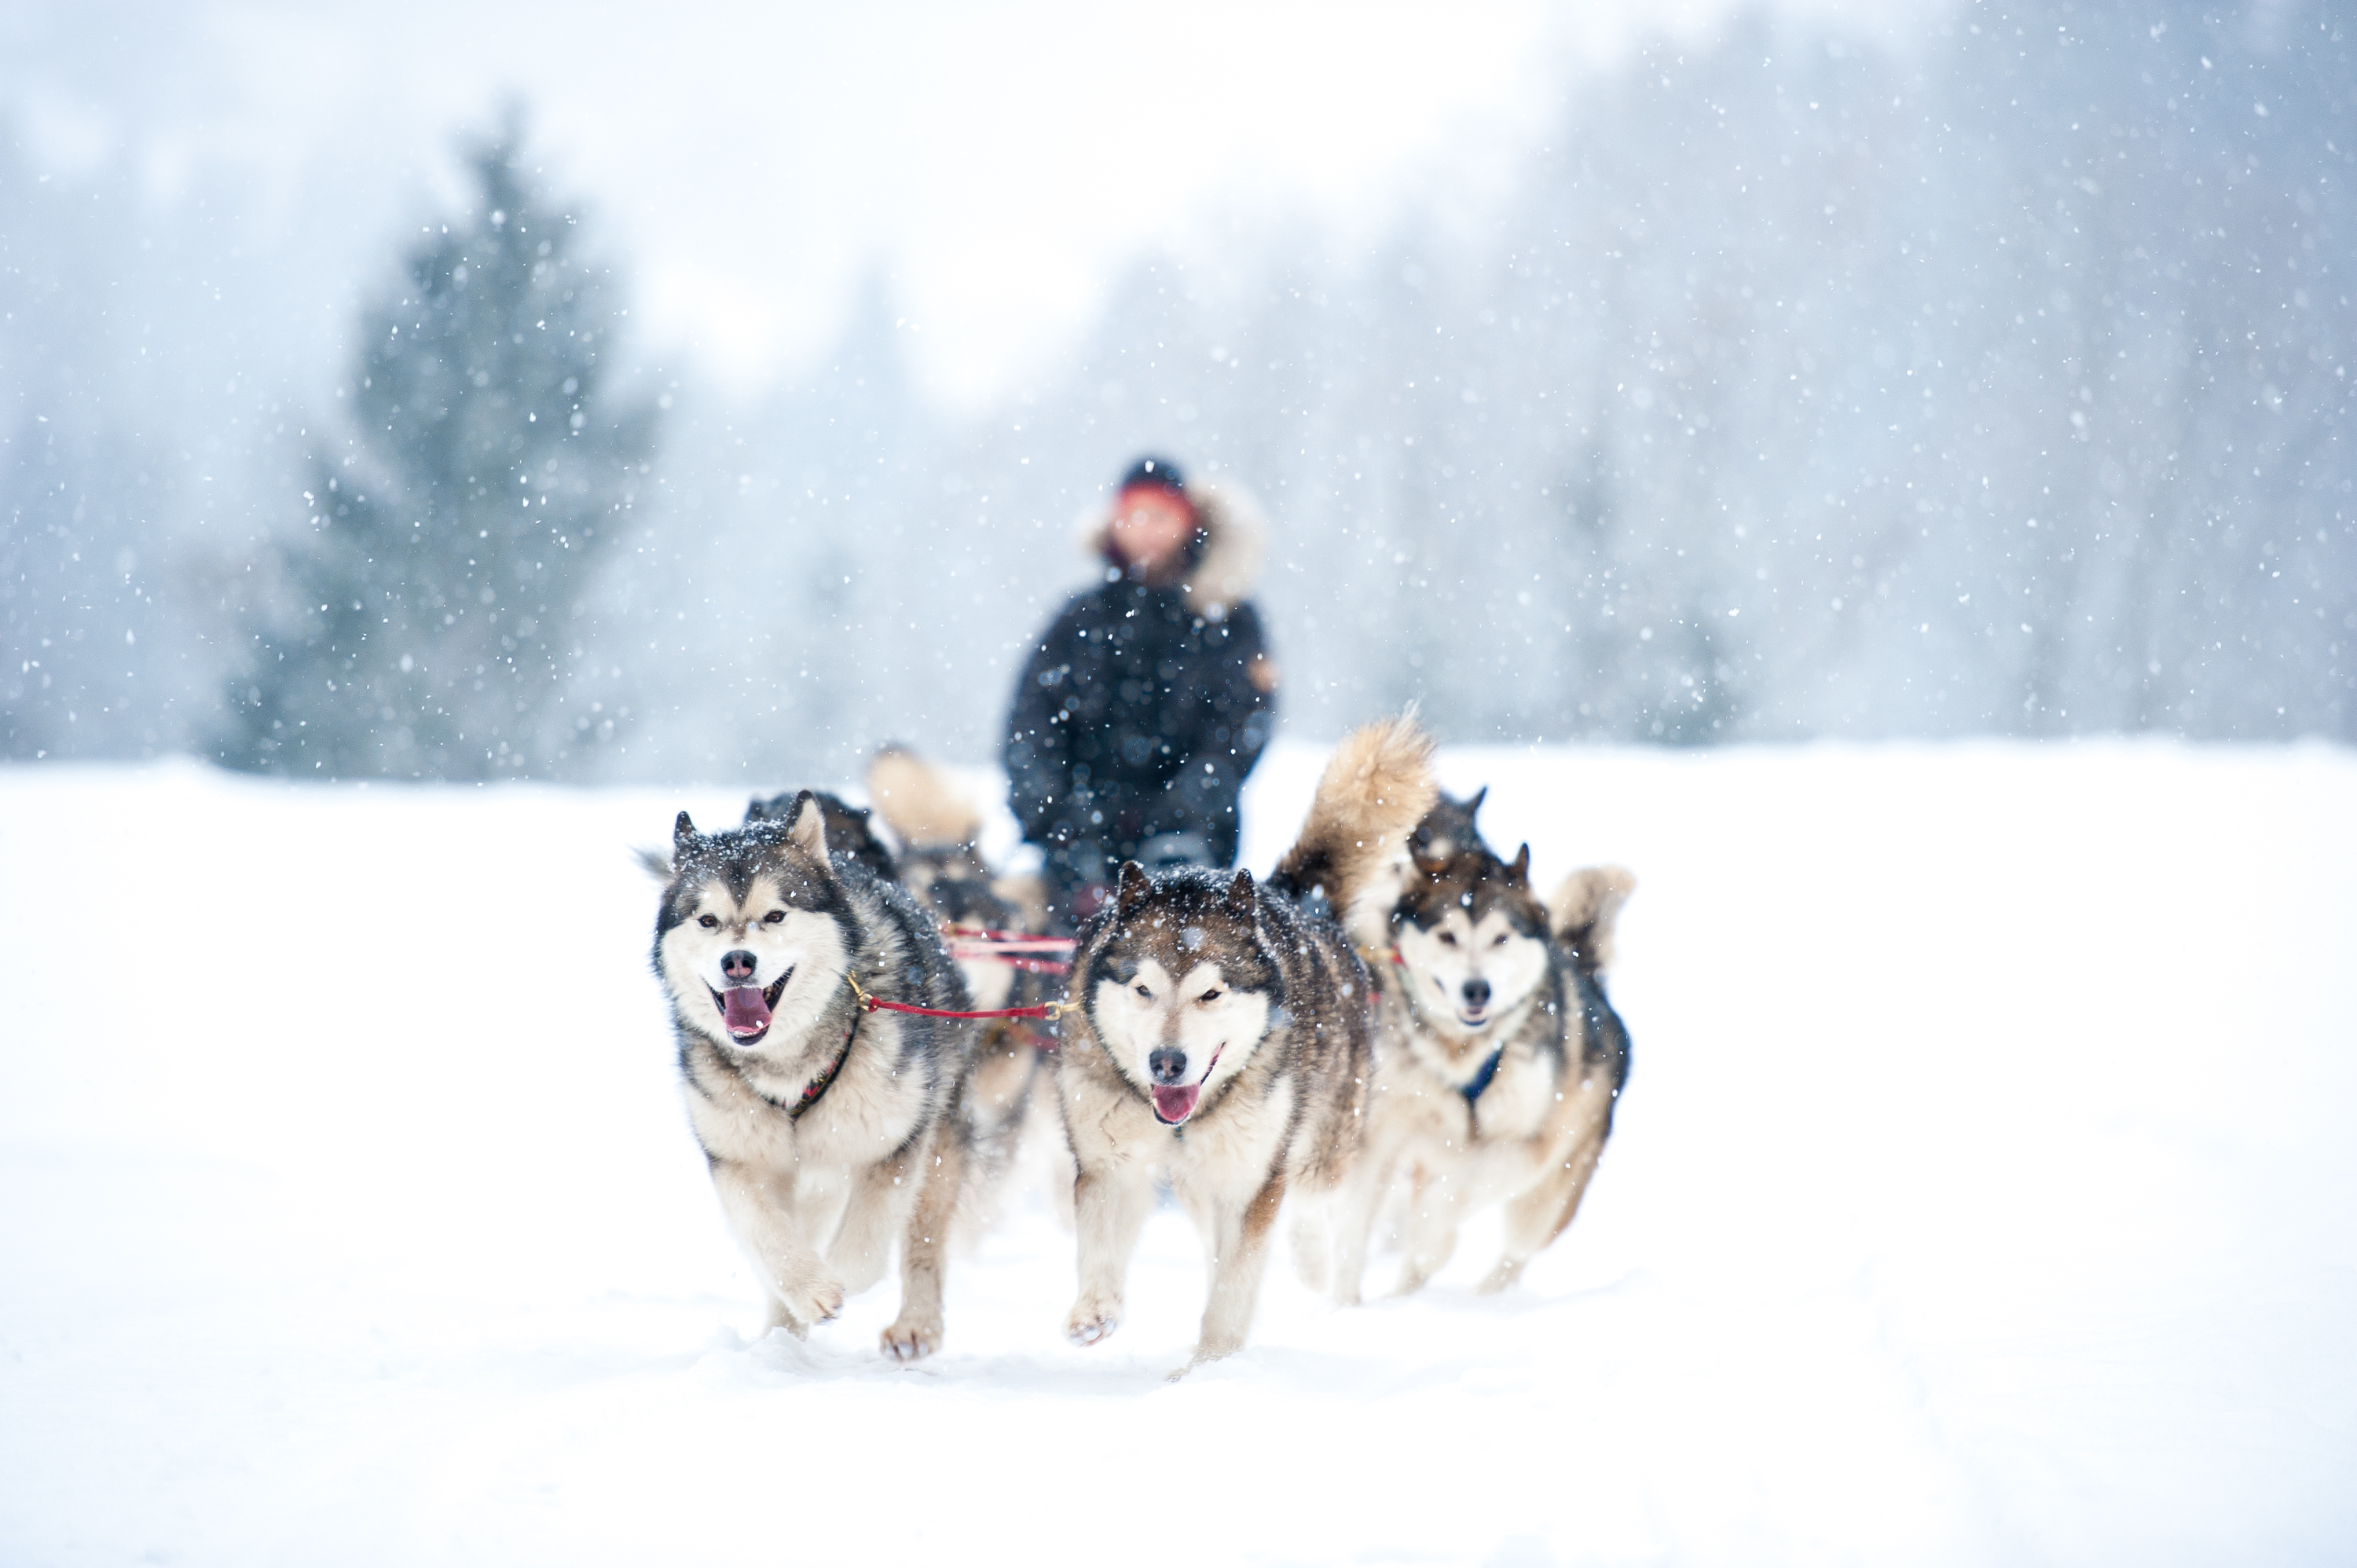 Dog sledding near Montreal for a frosty mush and rush